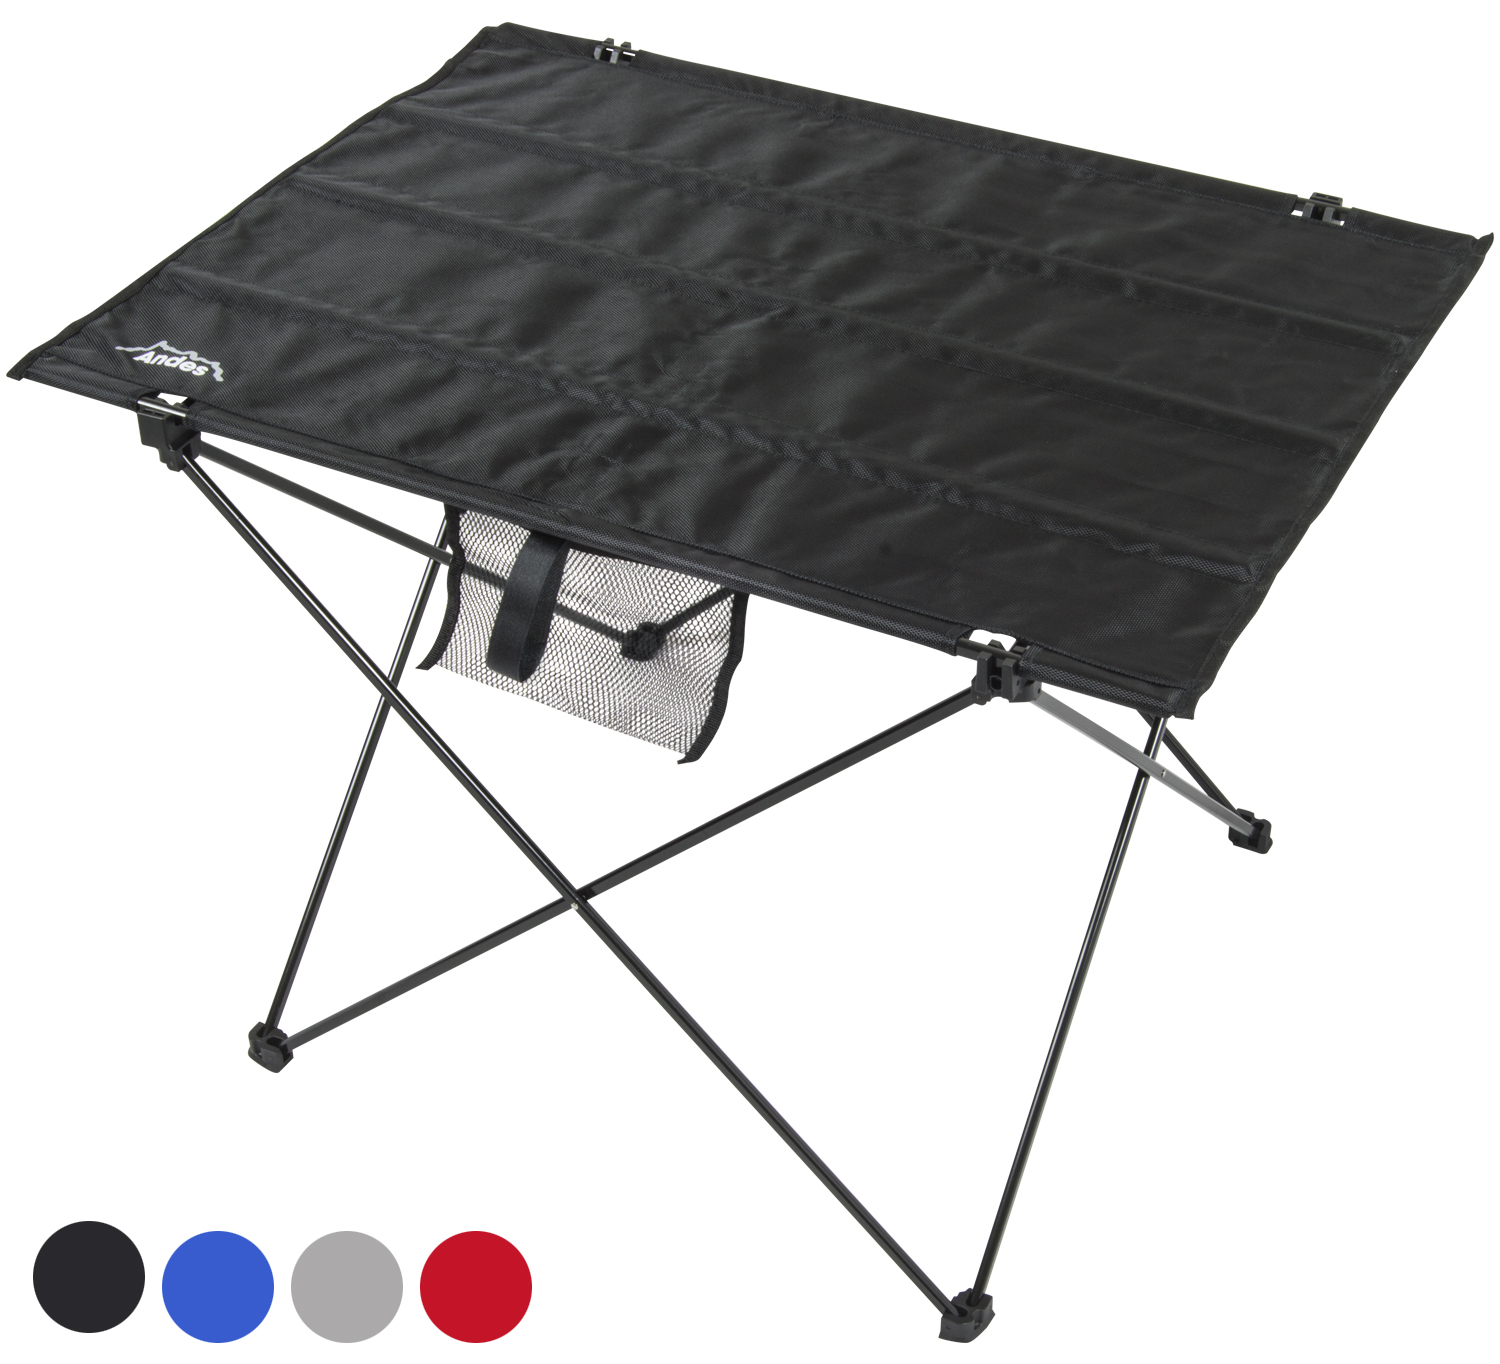 Andes ultralight folding camping table andes outdoor value - Lightweight camping tables ...